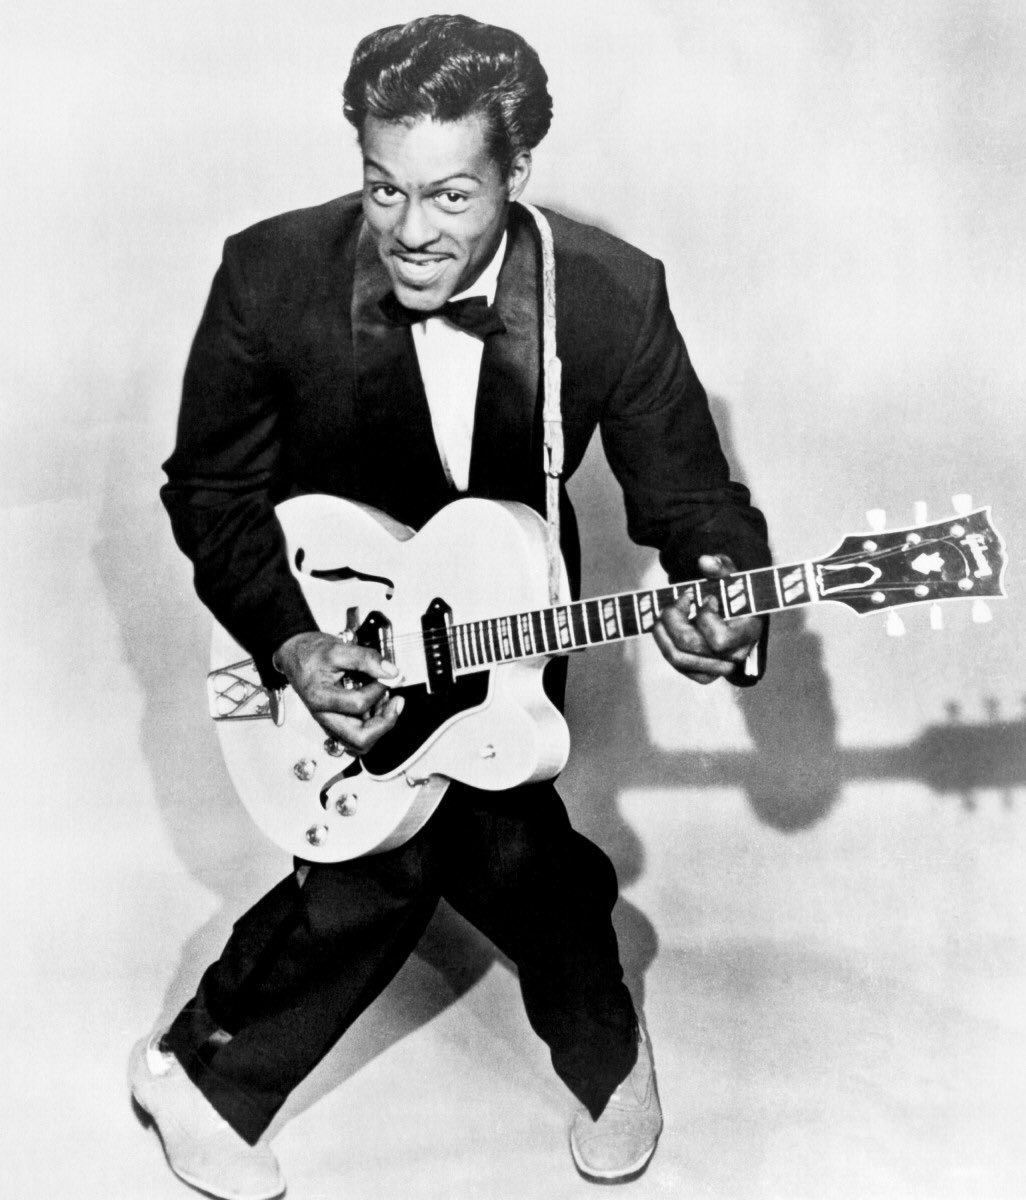 Rest In Peace Chuck Berry https://t.co/mBIVYnOaCu